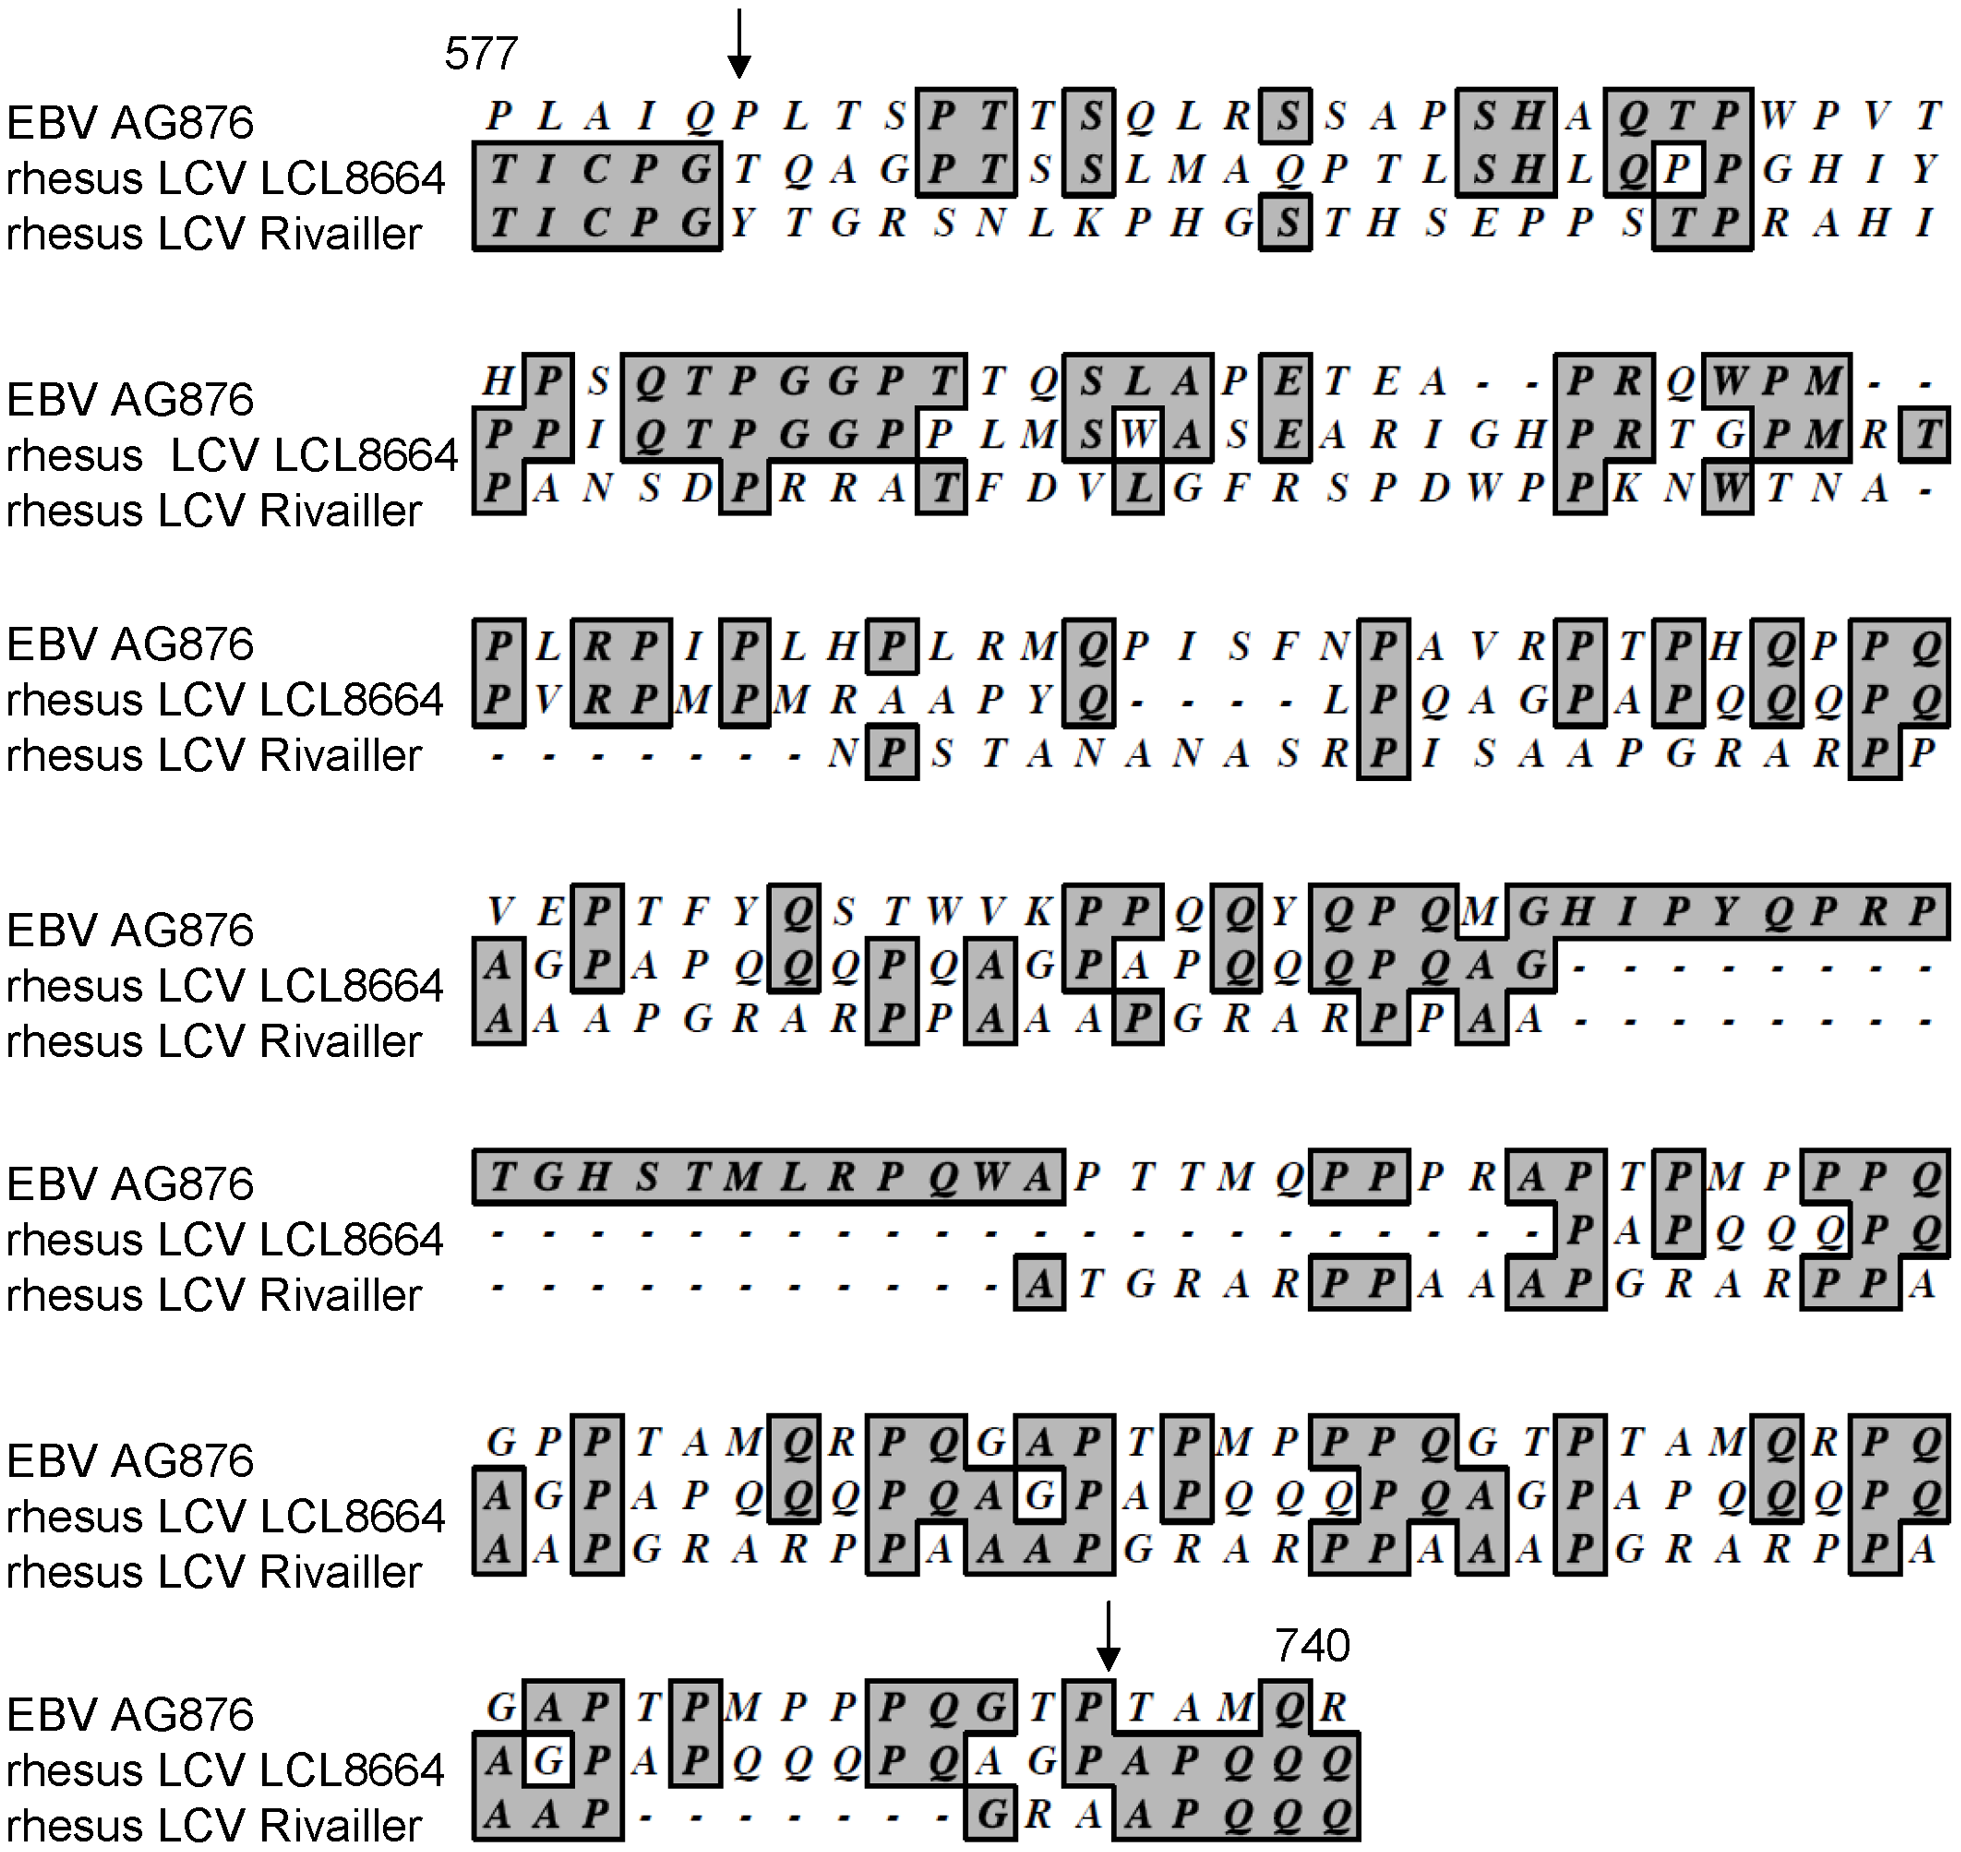 Alignment of amino acids 577−740 of rhesus LCV EBNA-3B from LCL8664 cells (middle lines) with the previously published sequence (<em class=&quot;ref&quot;>[<b>21</b>]</em>, lower lines), and amino acids 571−768 of EBV AG876 EBNA-3B (top lines).